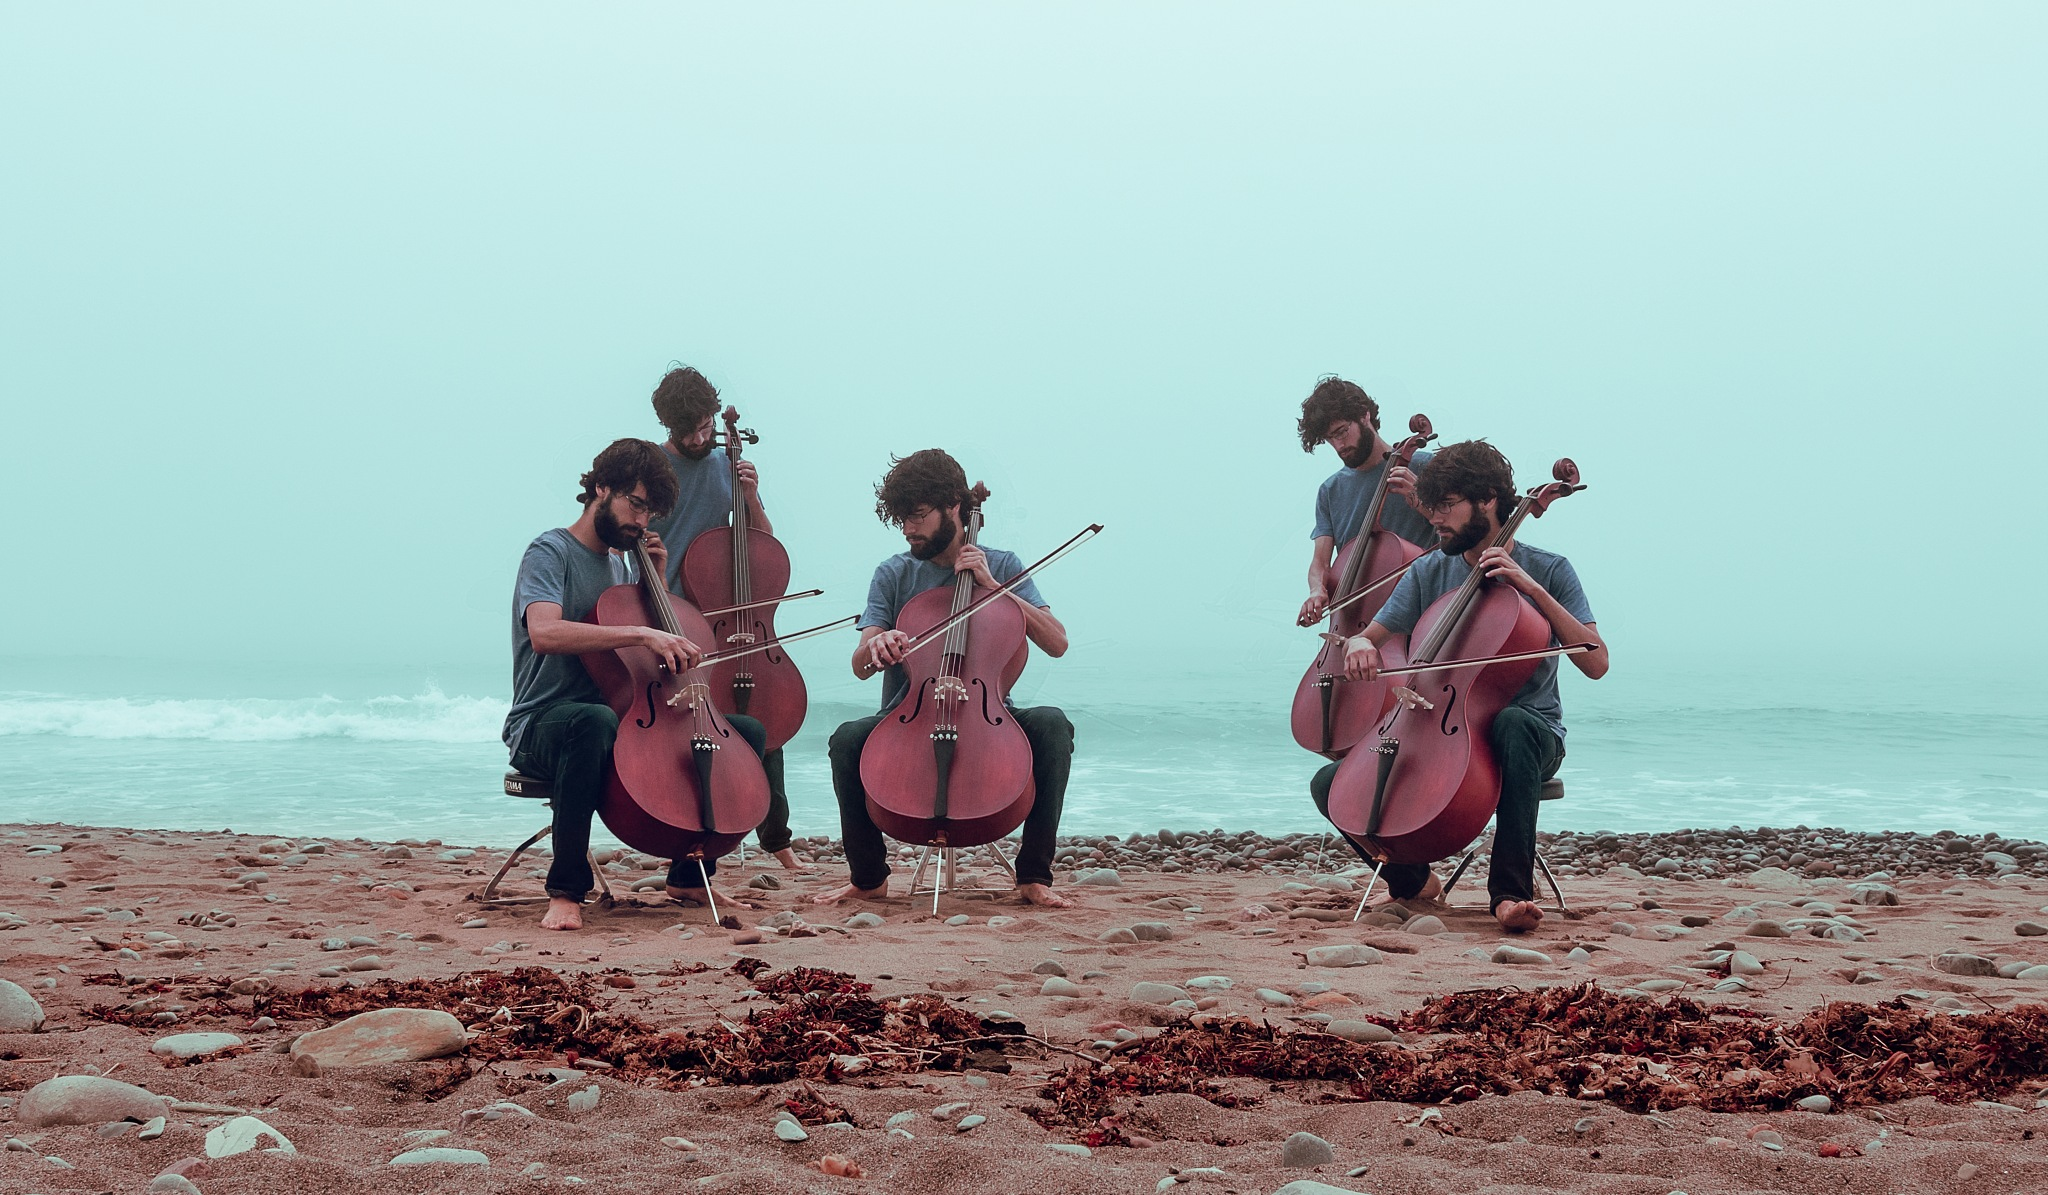 Ensemble on the Beach by Sean LeBlanc